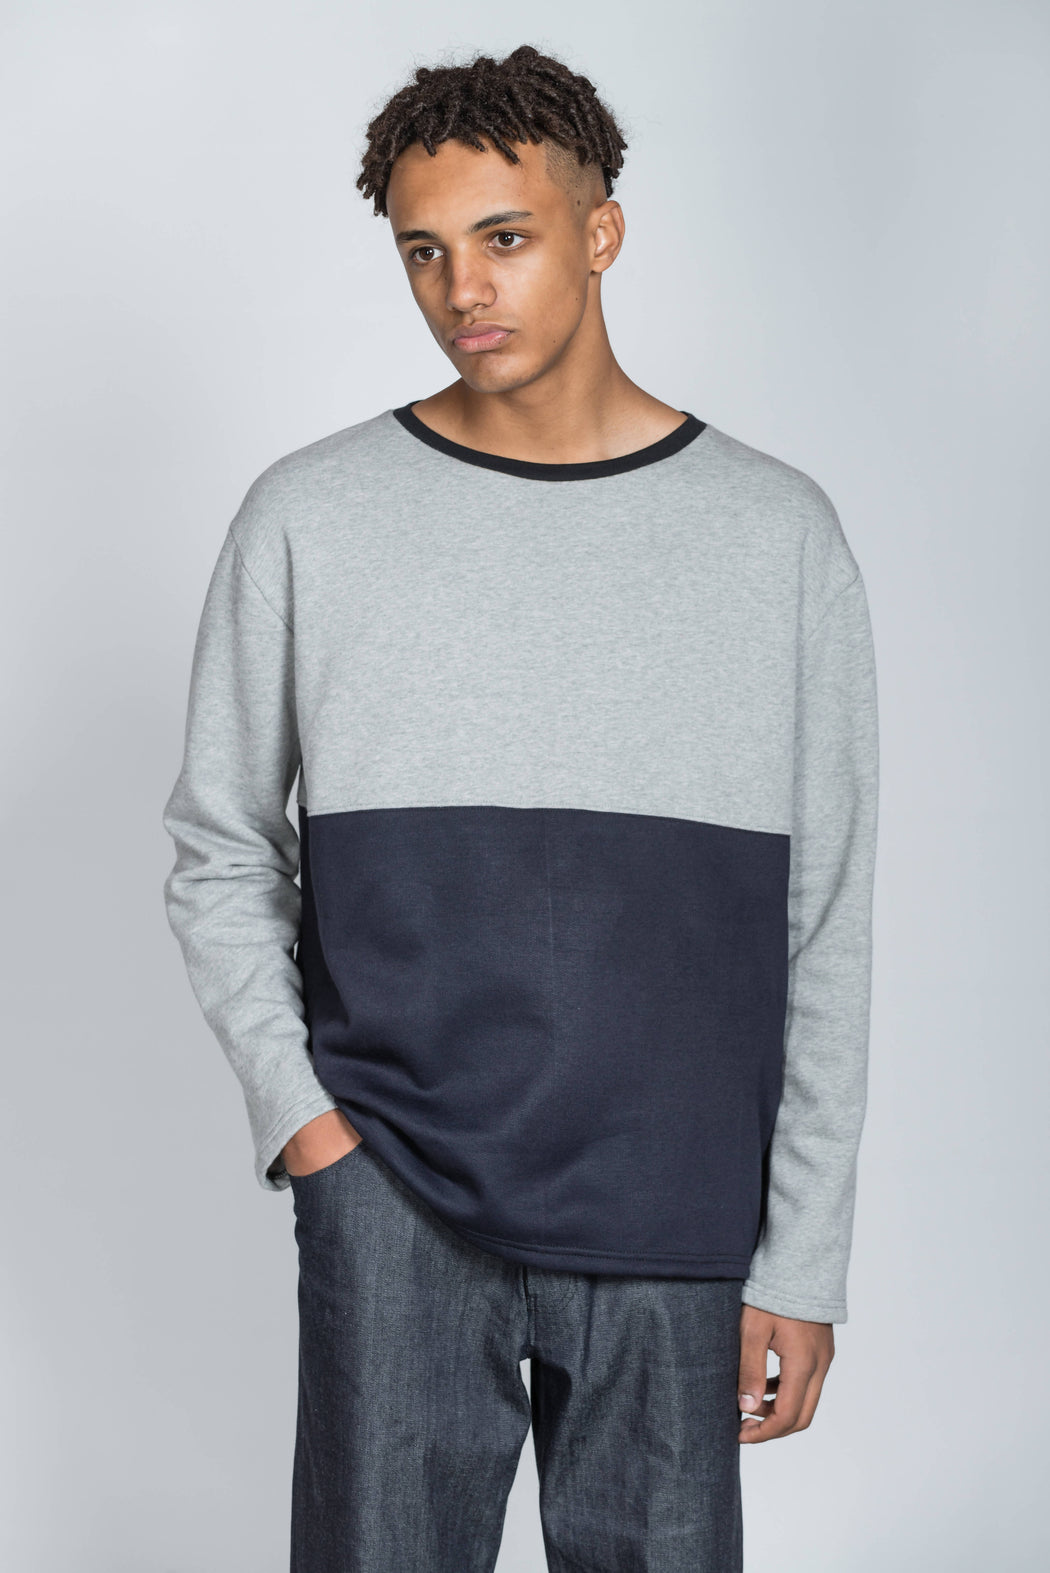 Rozenbroek Men's Grey and Black Colour Block Sweatshirt